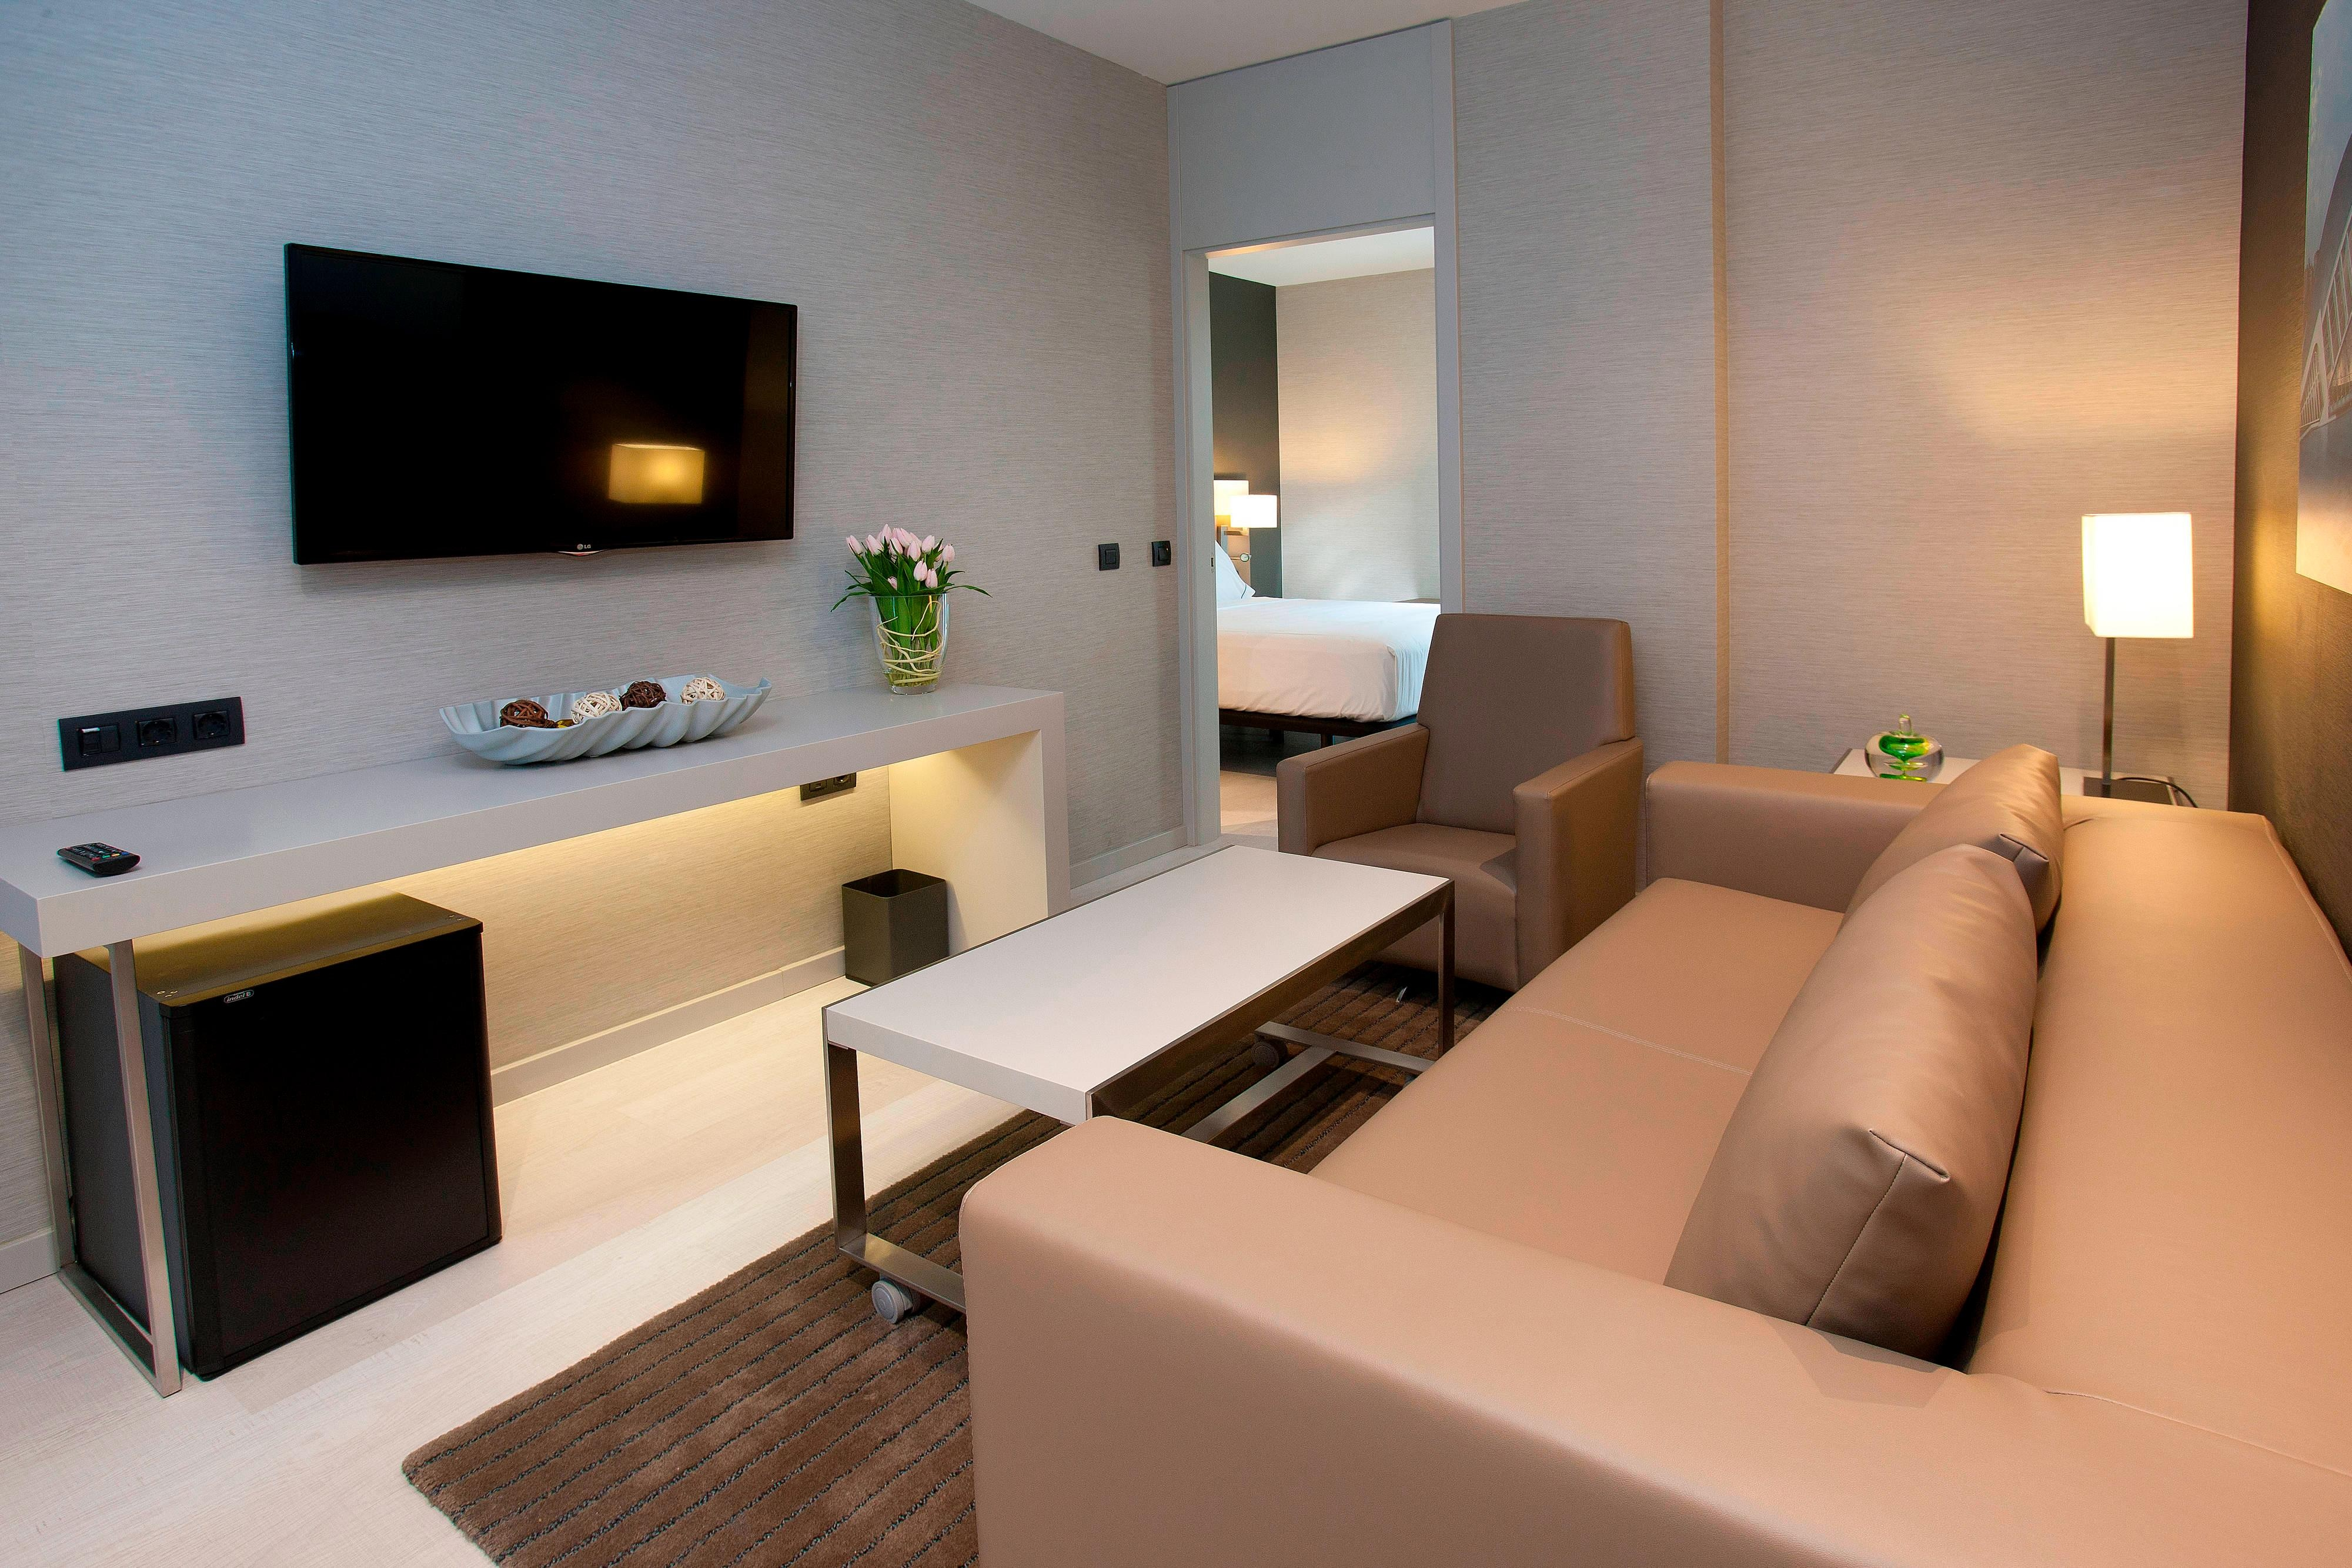 Hotel in Valencia city with exlcusive Suites